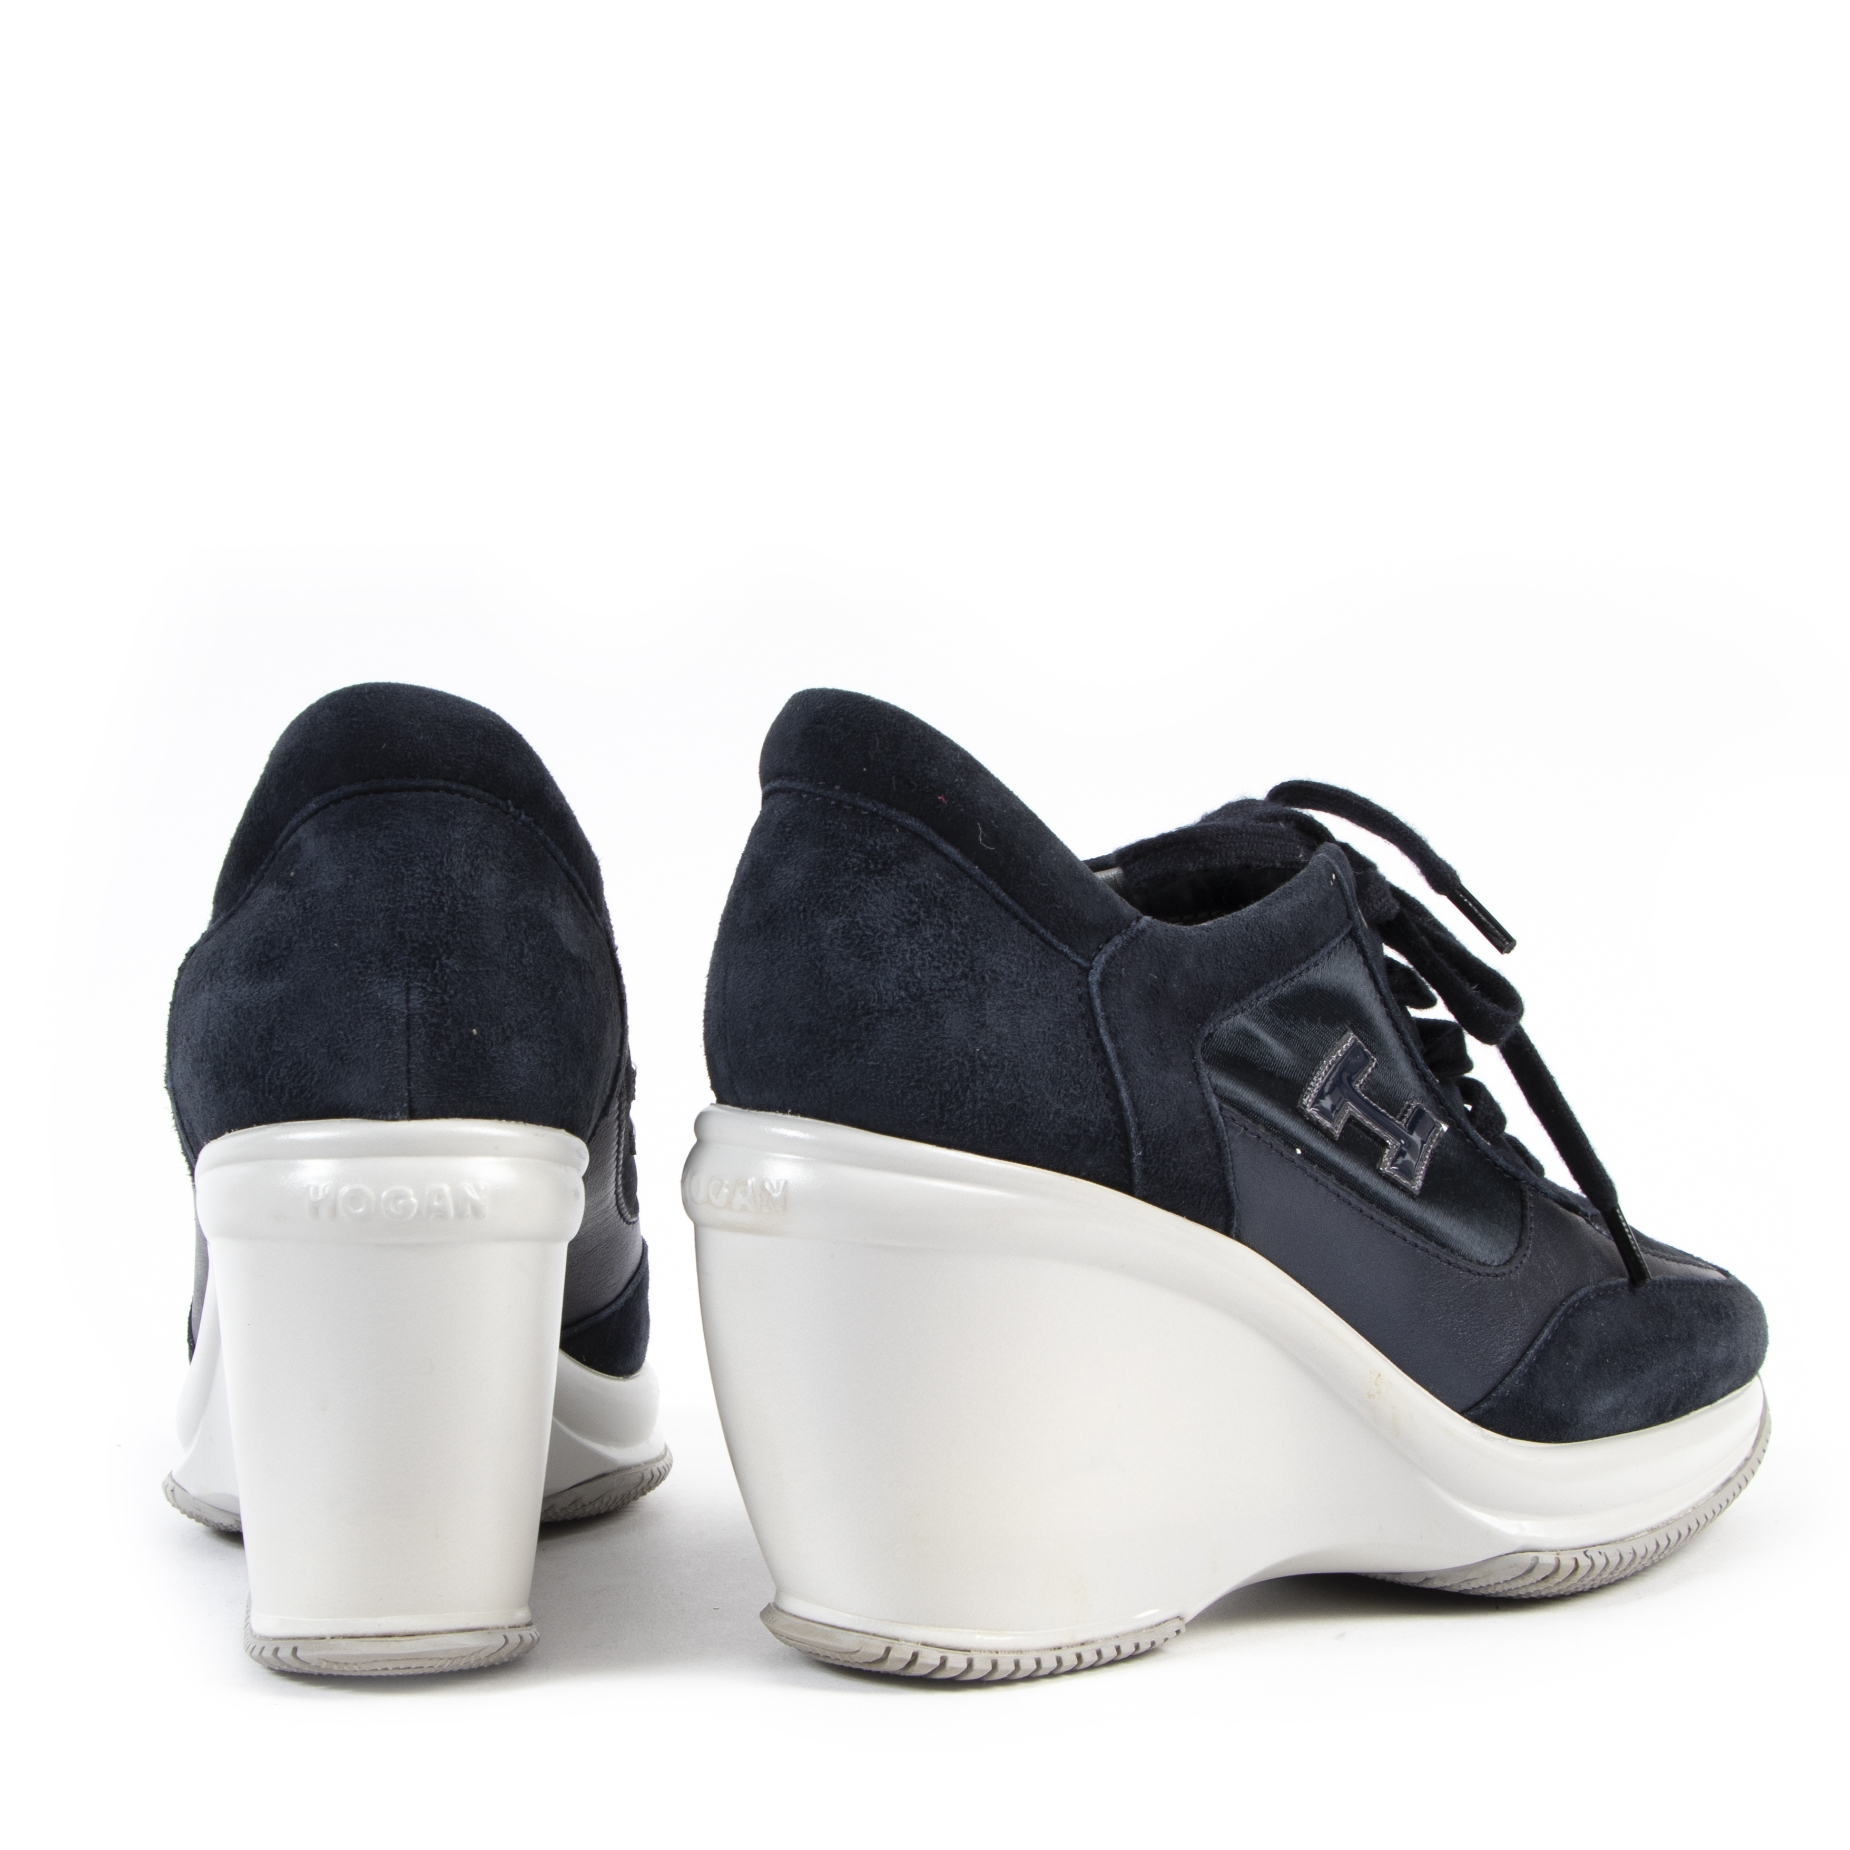 shop safe online Hogan Blue Wedge Sneakers - size 38,5